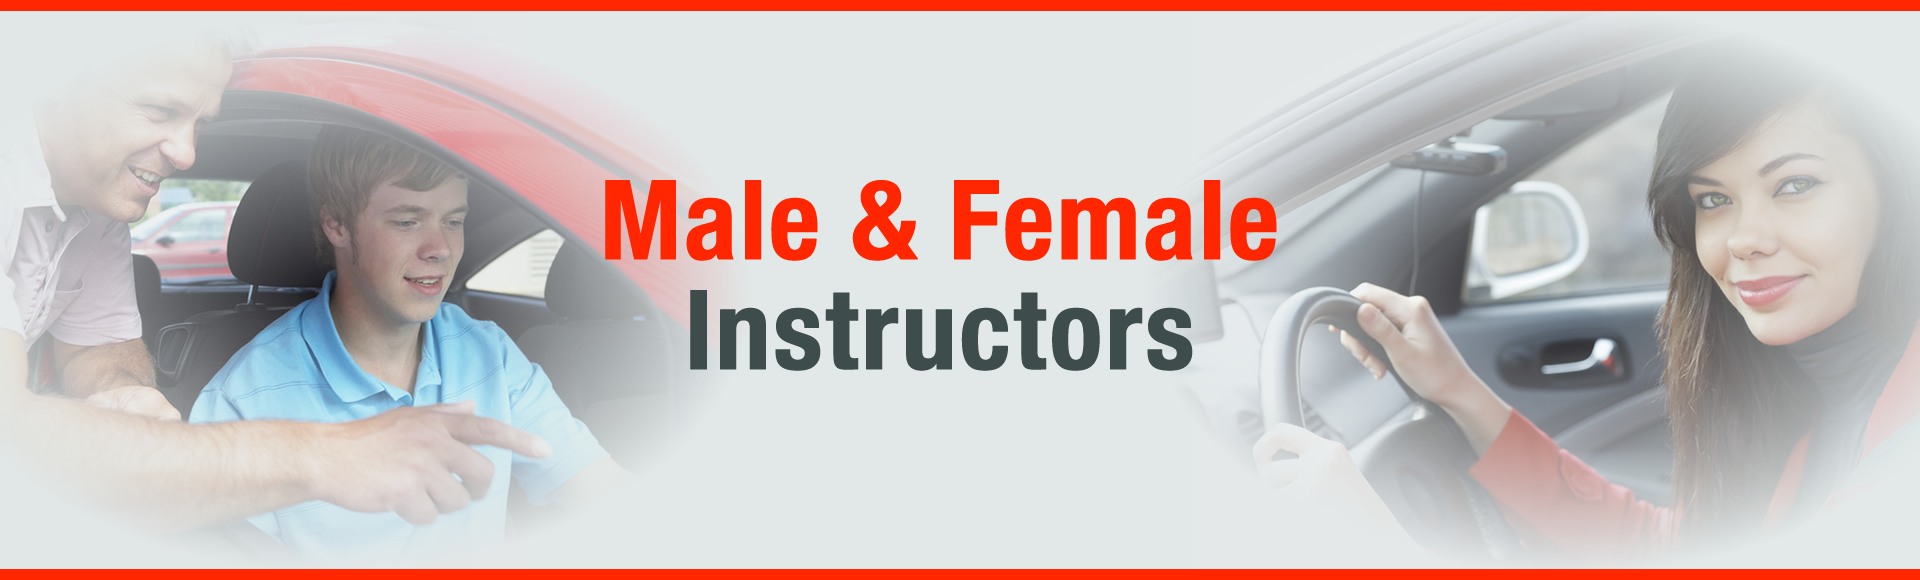 male-and-female-instructors3